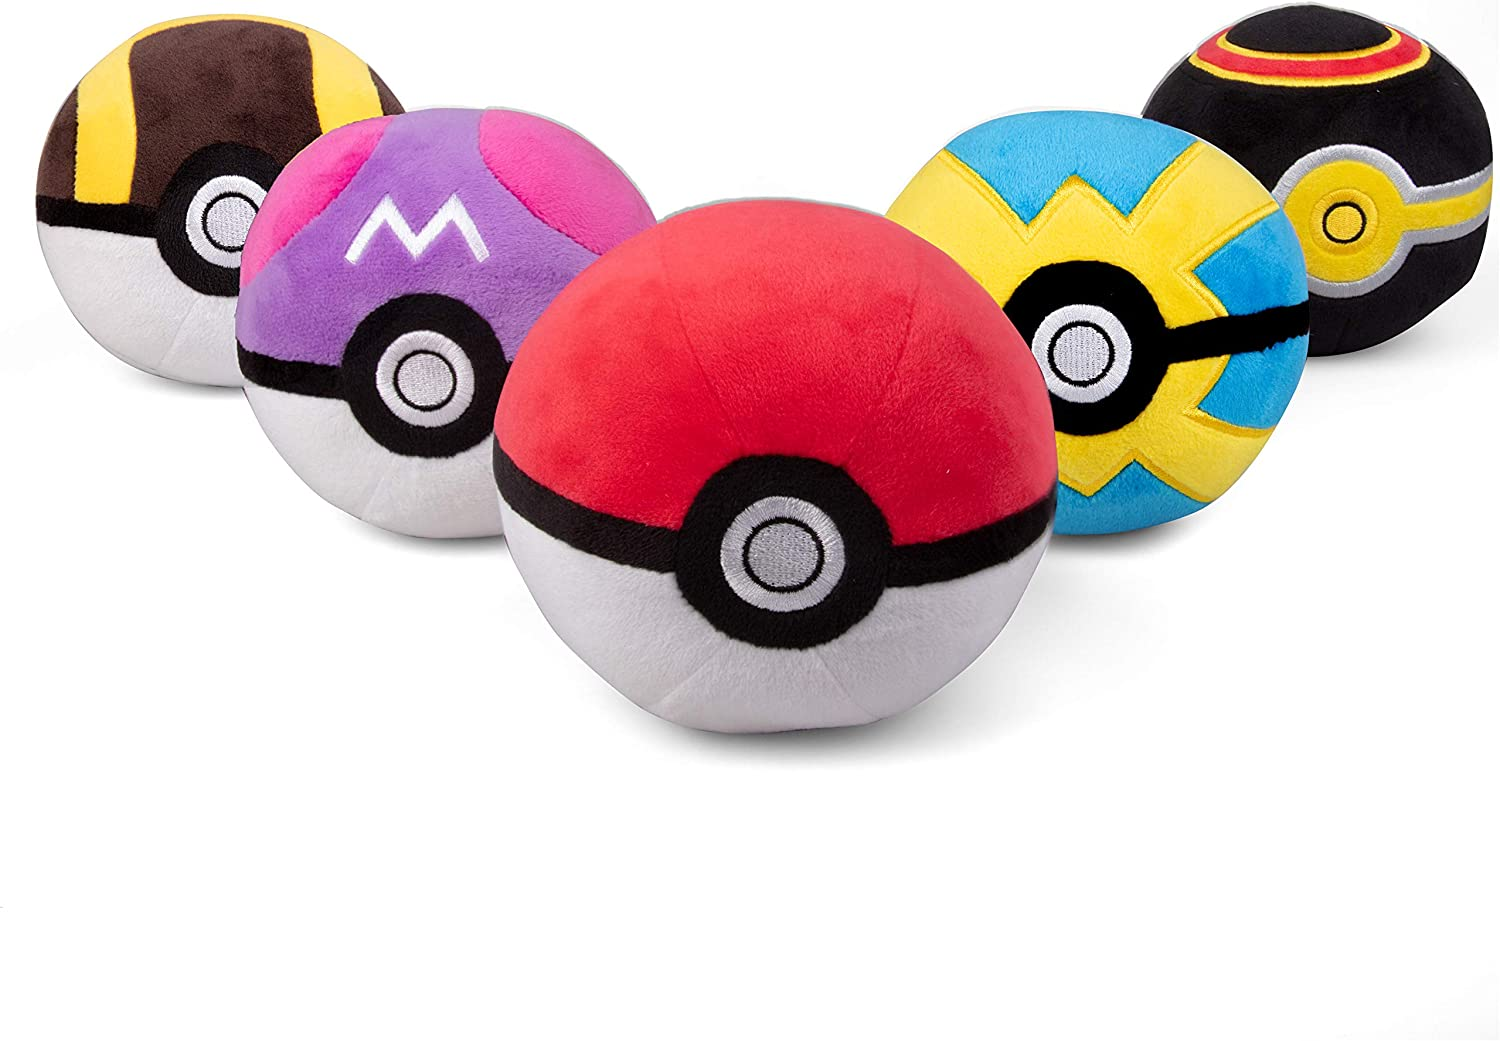 """Pokémon Pokéball Plush 5-Pack - Includes Poke, Master, Ultra, Quick, Luxury Ball - Soft Stuffed Pokéballs with Weighted Bottom - 4"""" Each - Ages 2+"""